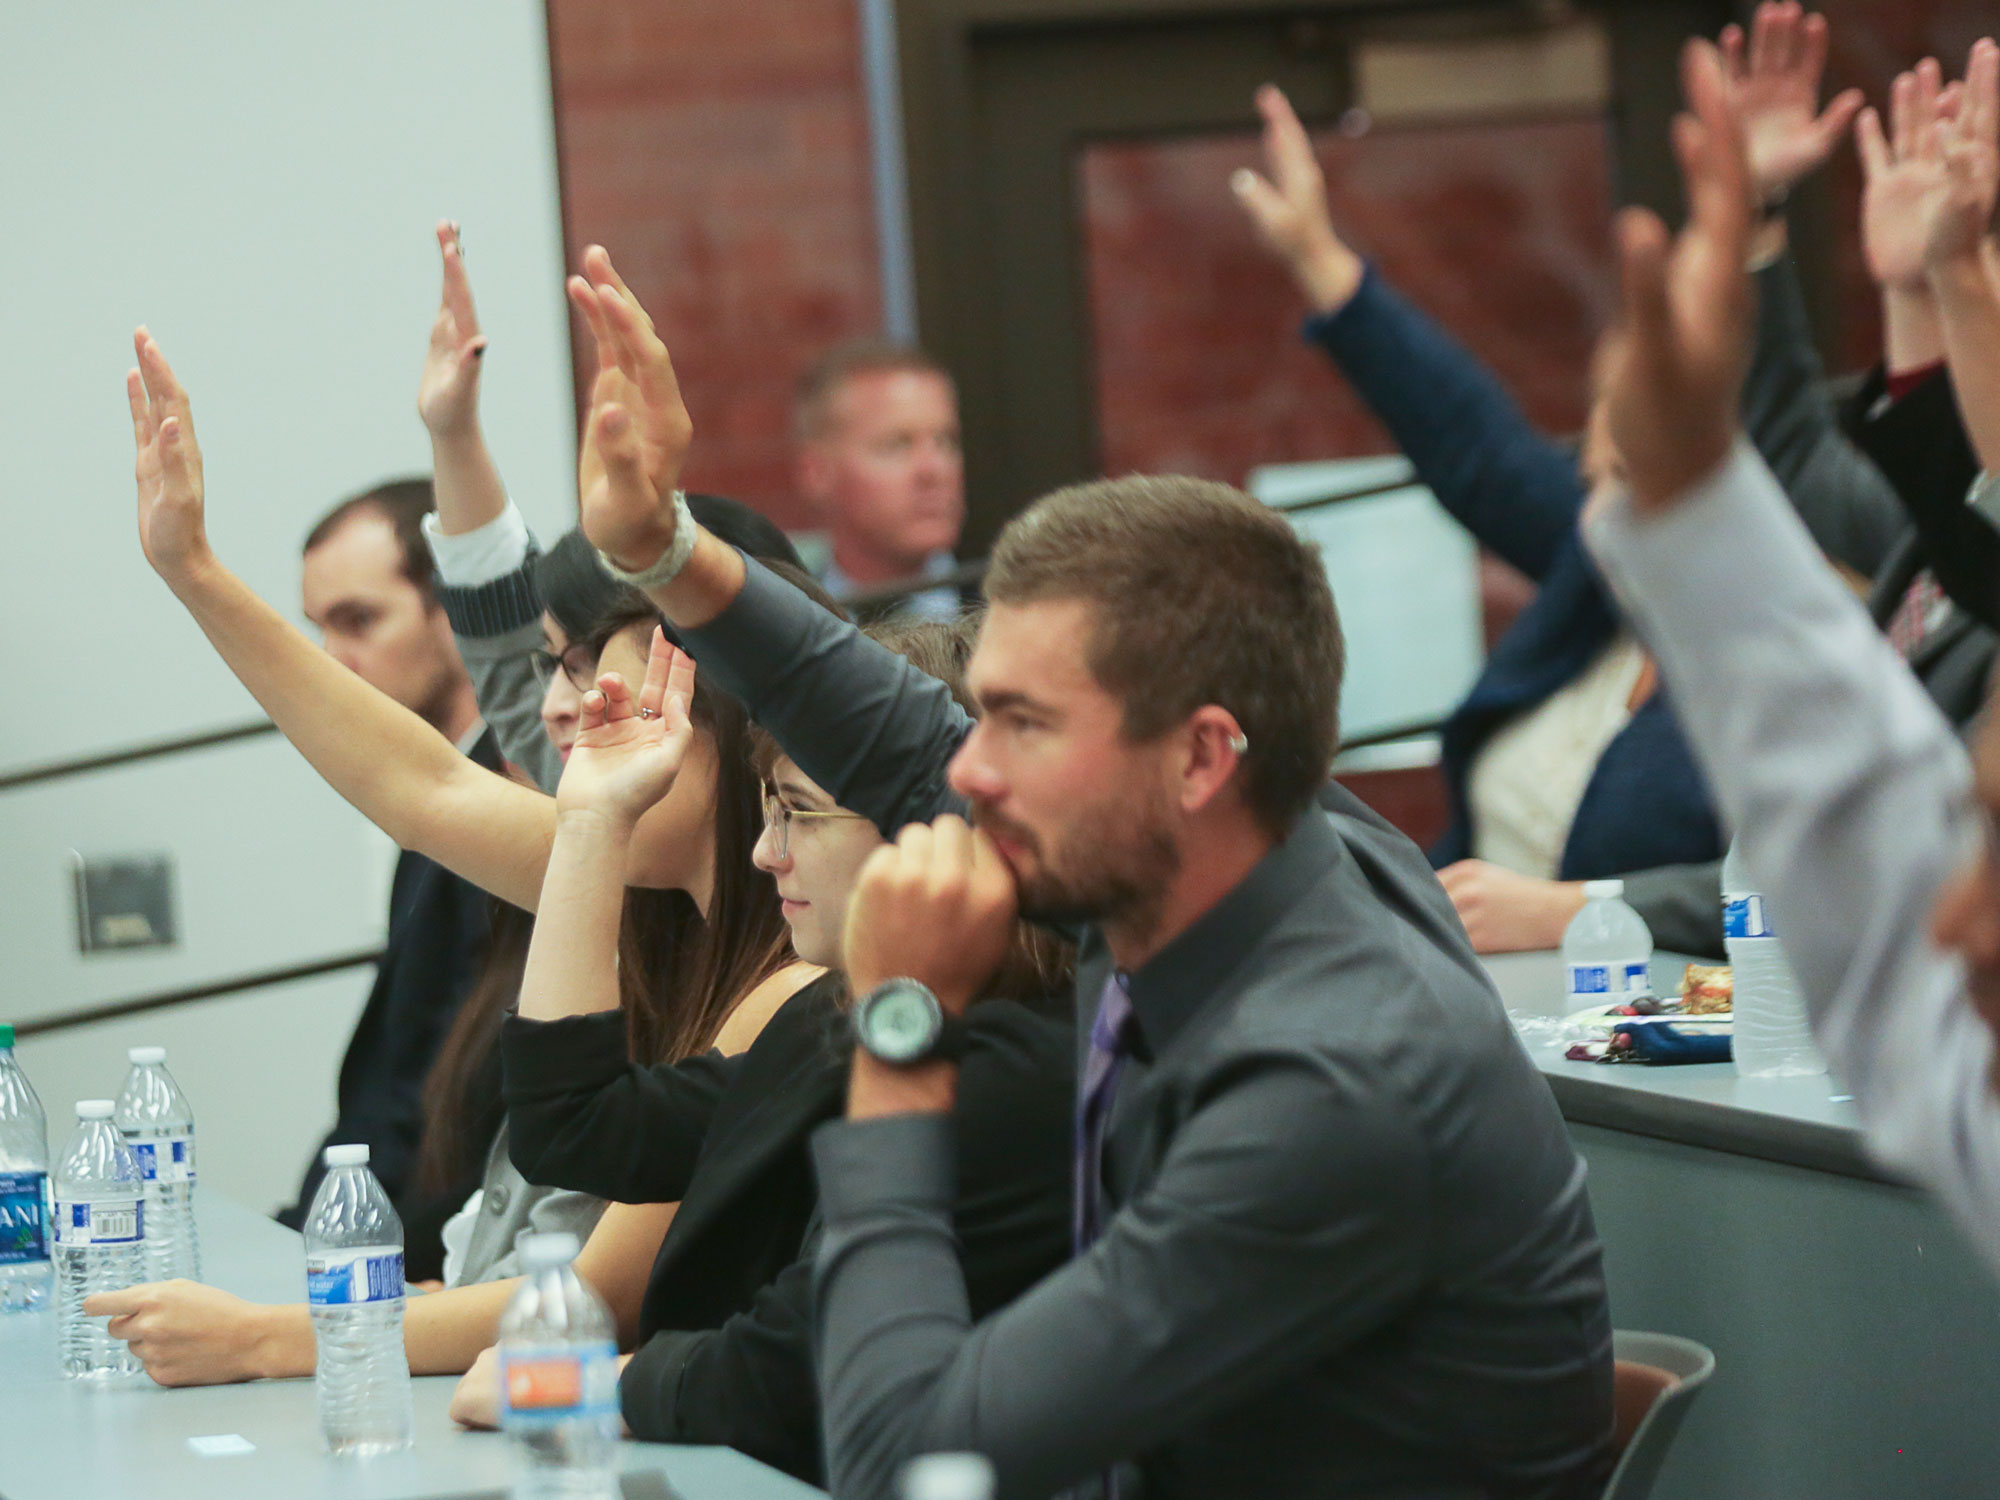 University of Arizona Law students raise their hands during a class